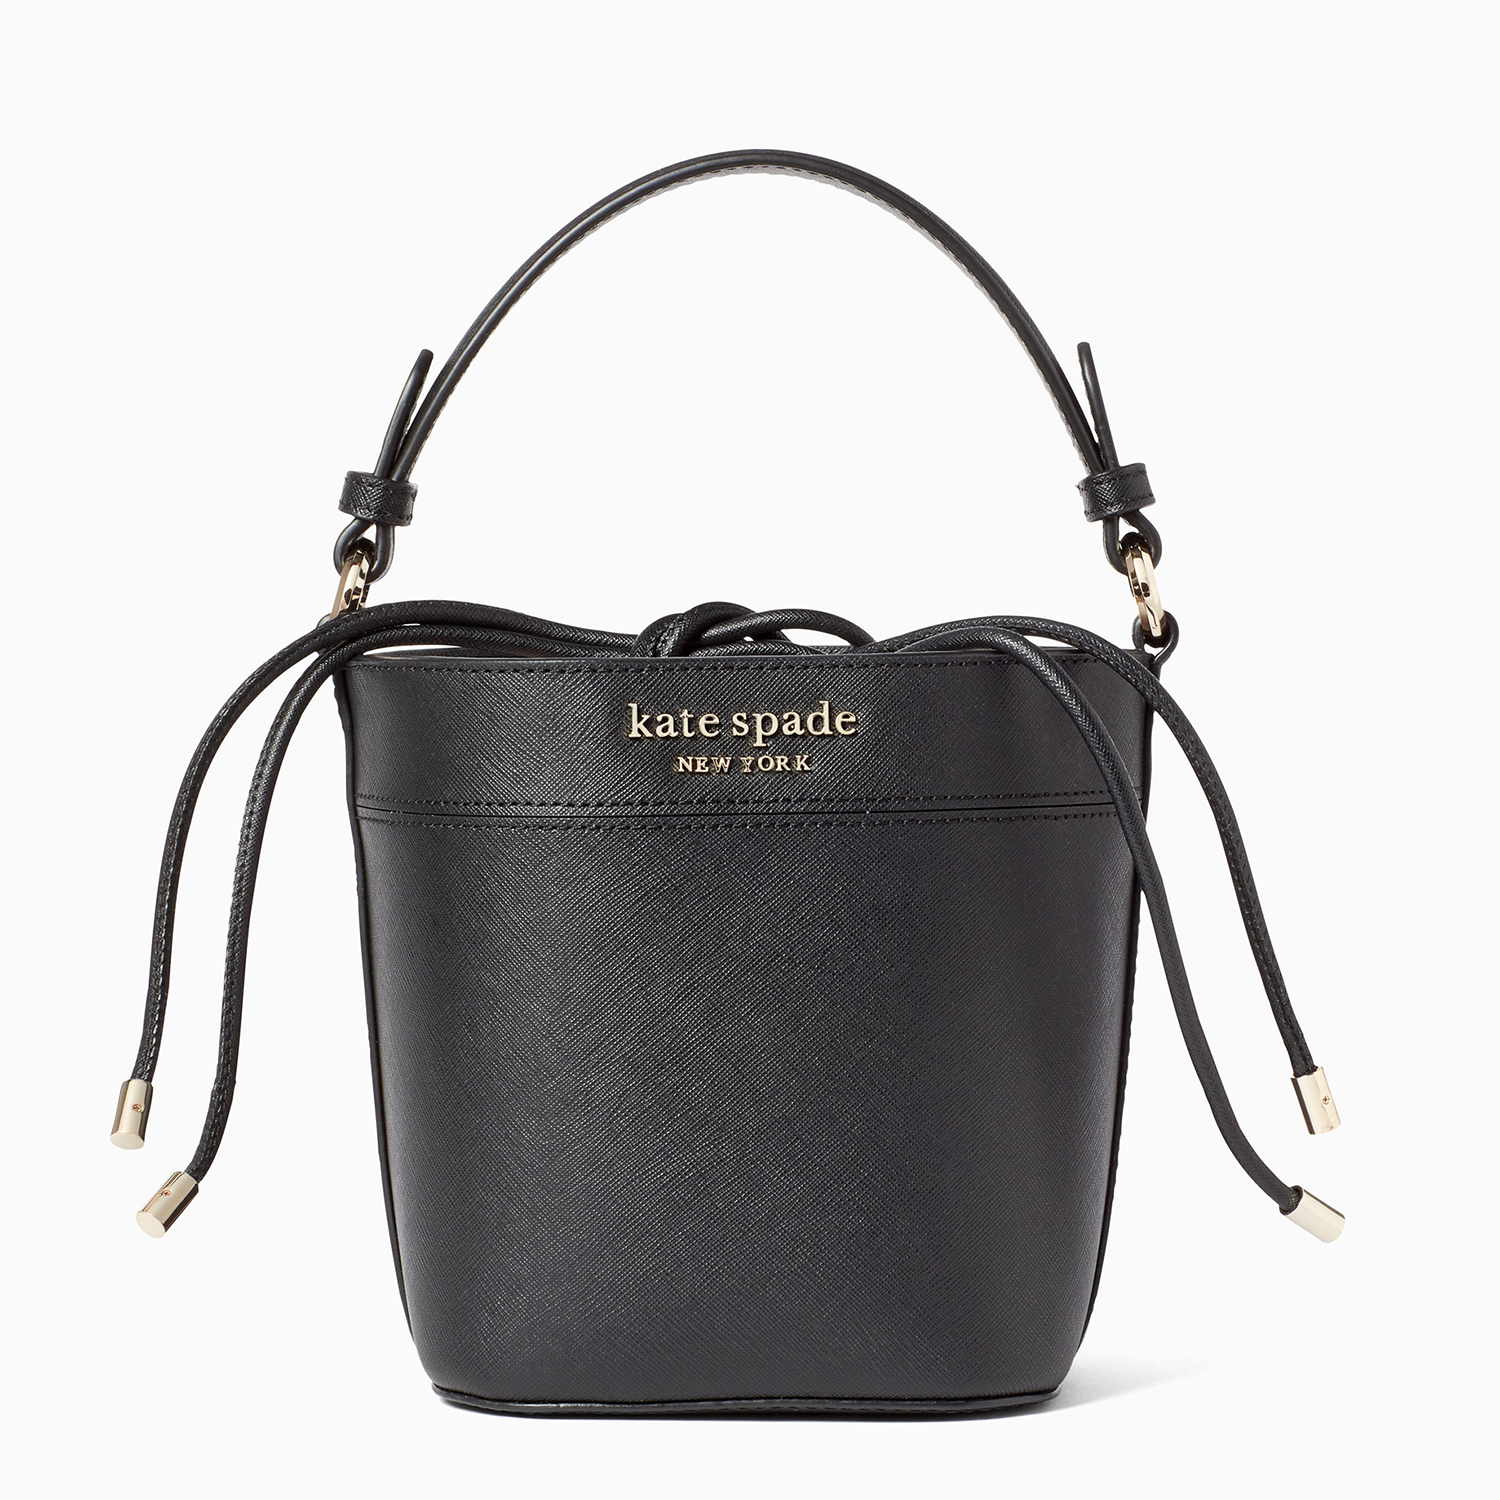 Cameron Small Bucket Bag Kate Spade